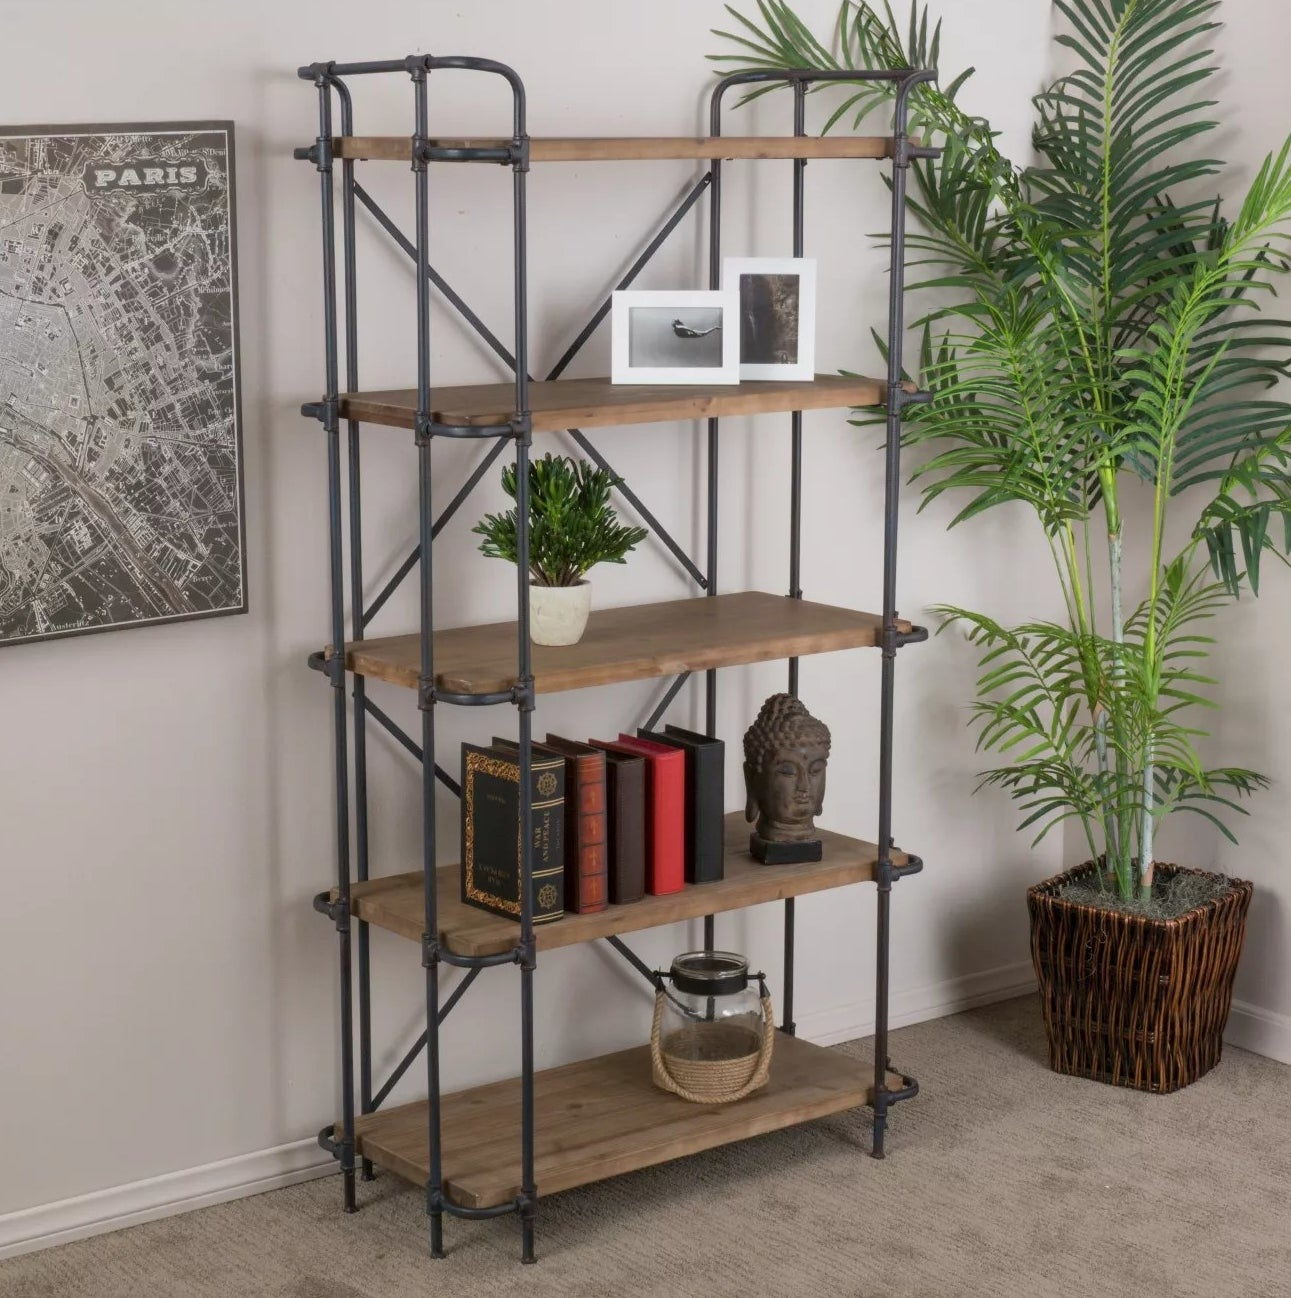 The bookcase with an iron pipe frame and wood shelves